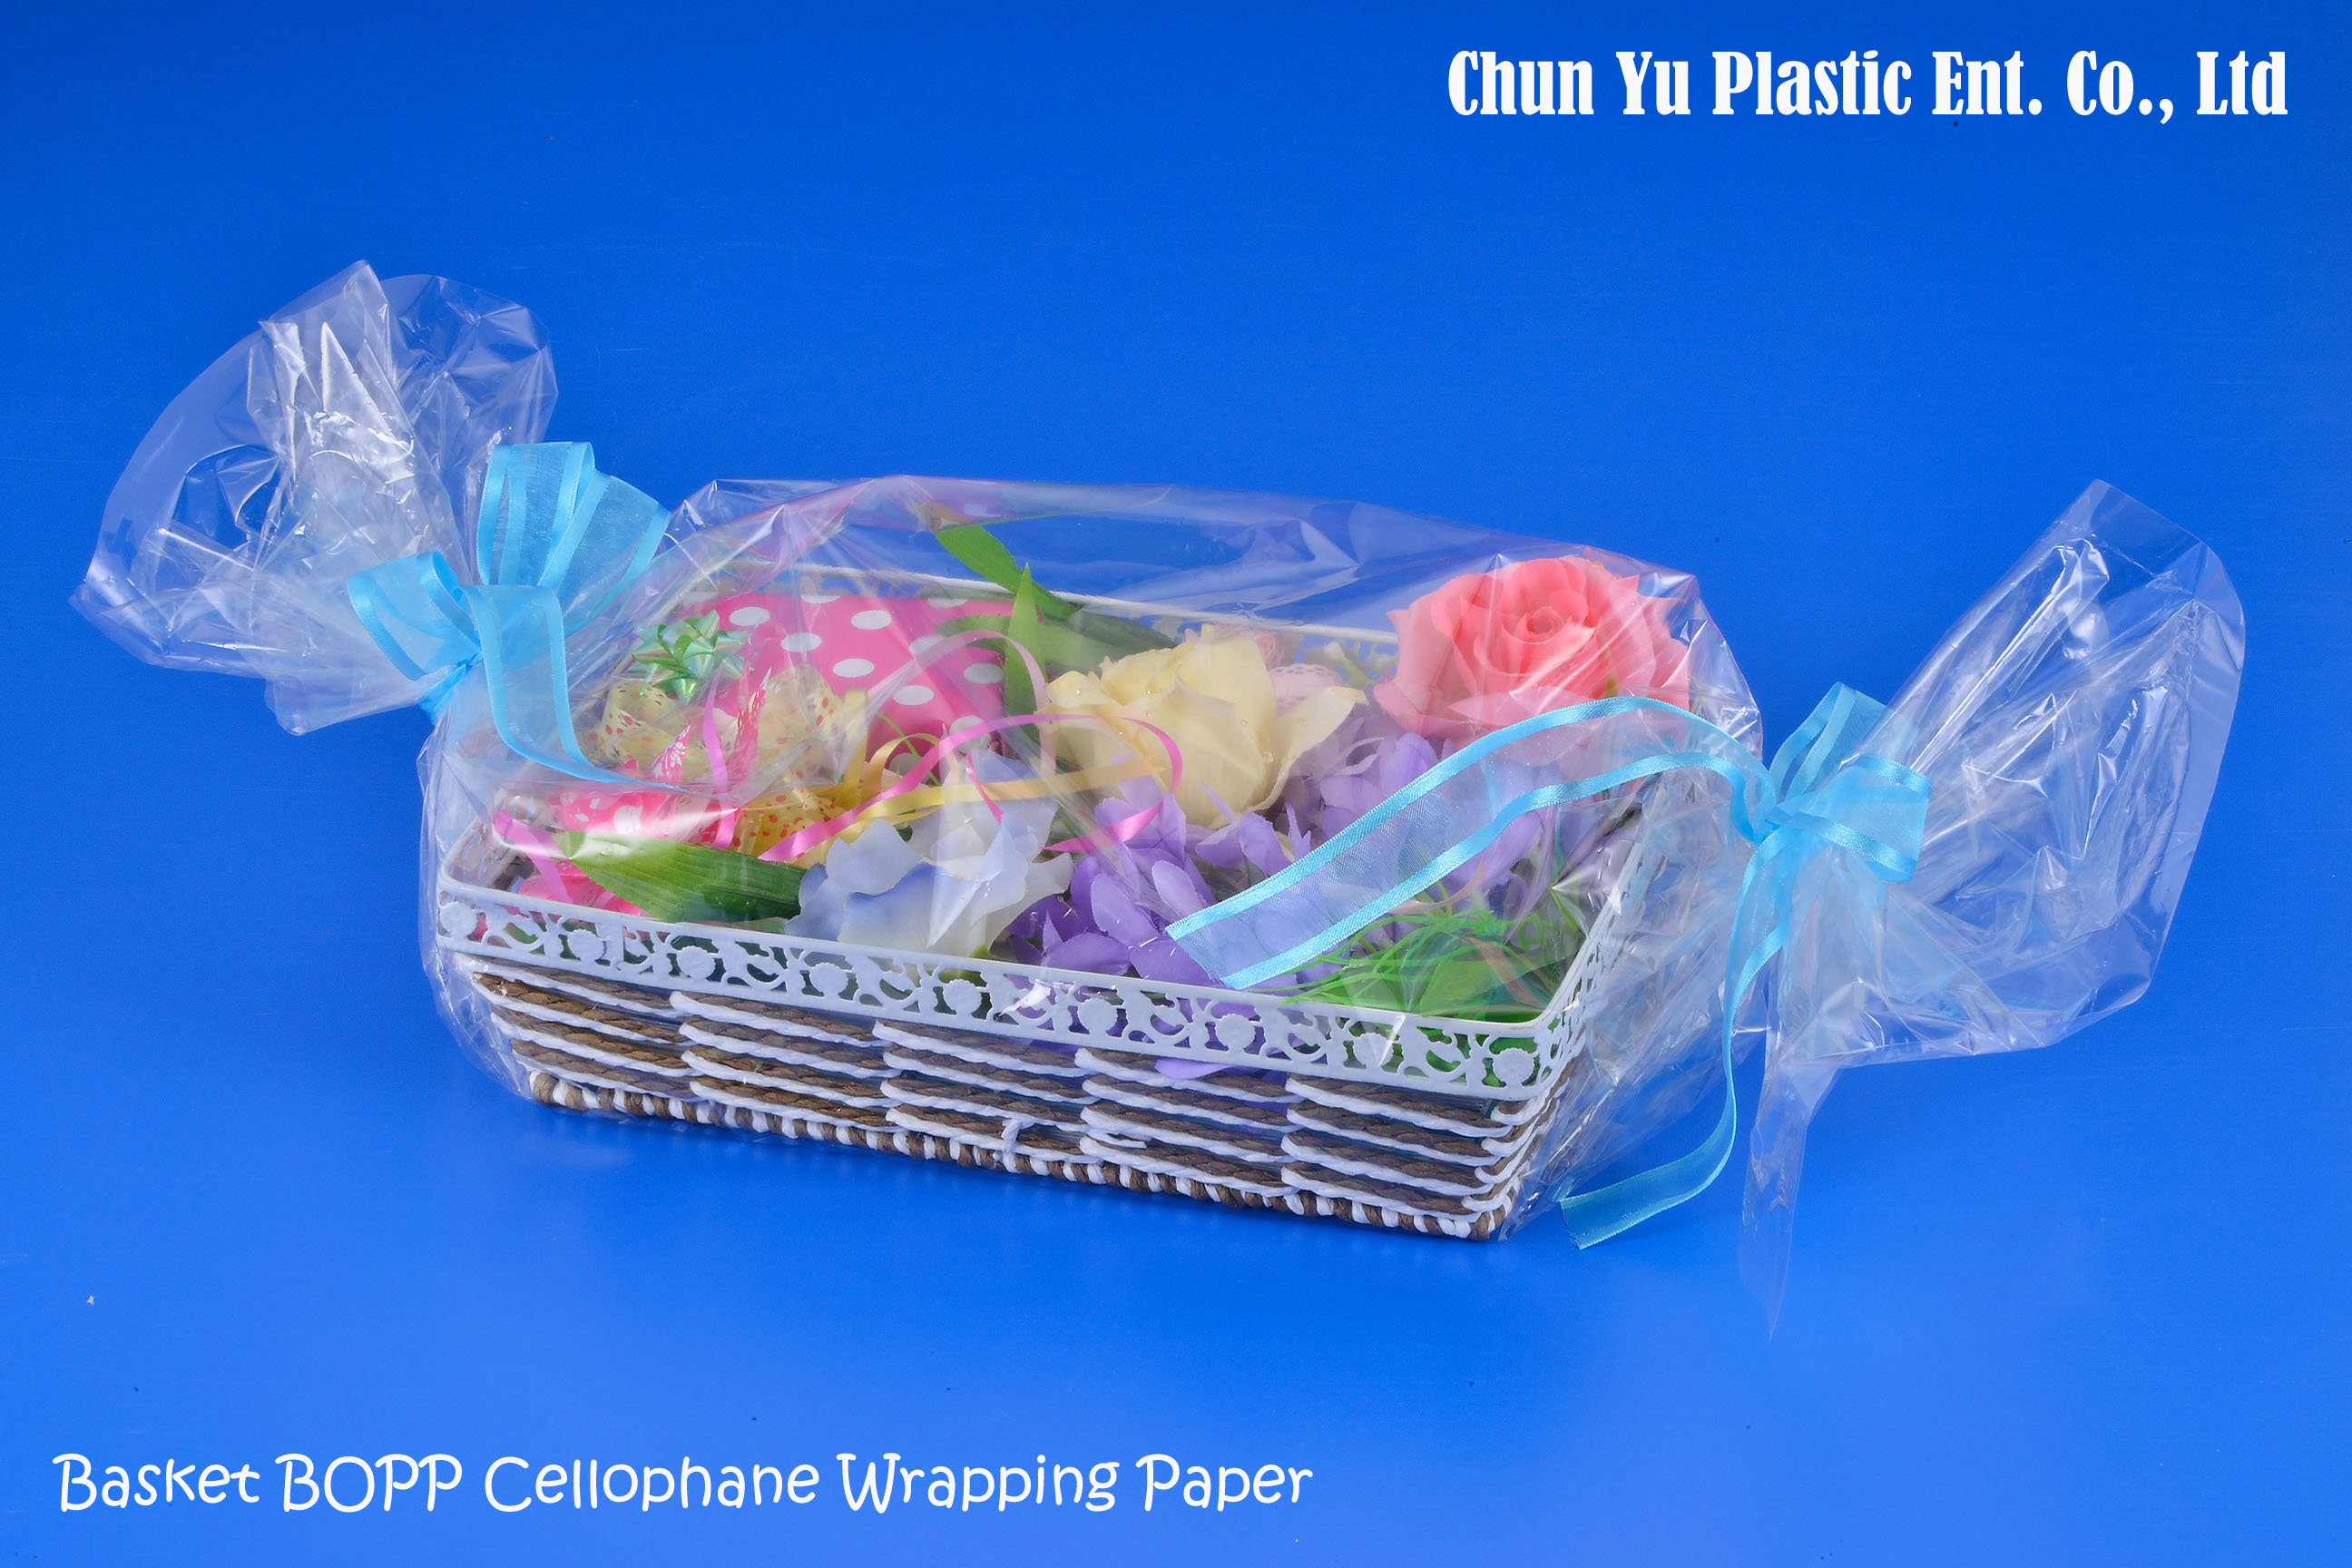 Clear cellophane wrapping paper for gift basket arrangement